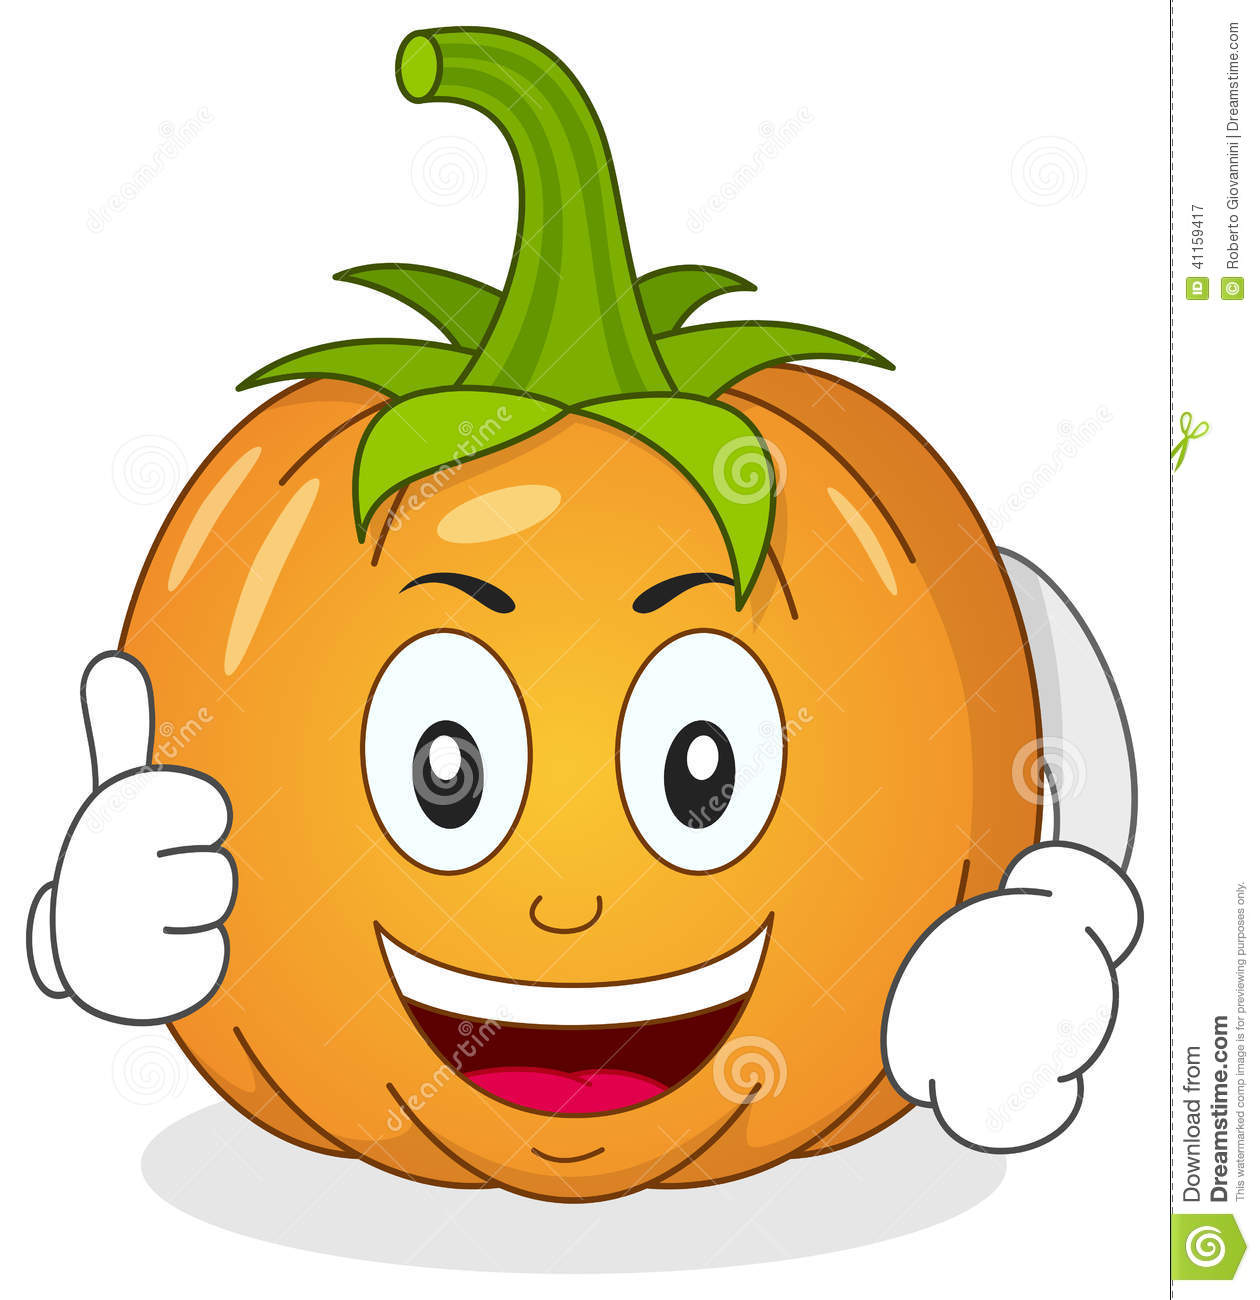 https://www.askideas.com/media/24/Pumpkin-Funny-Thumbs-Up-Picture.jpg